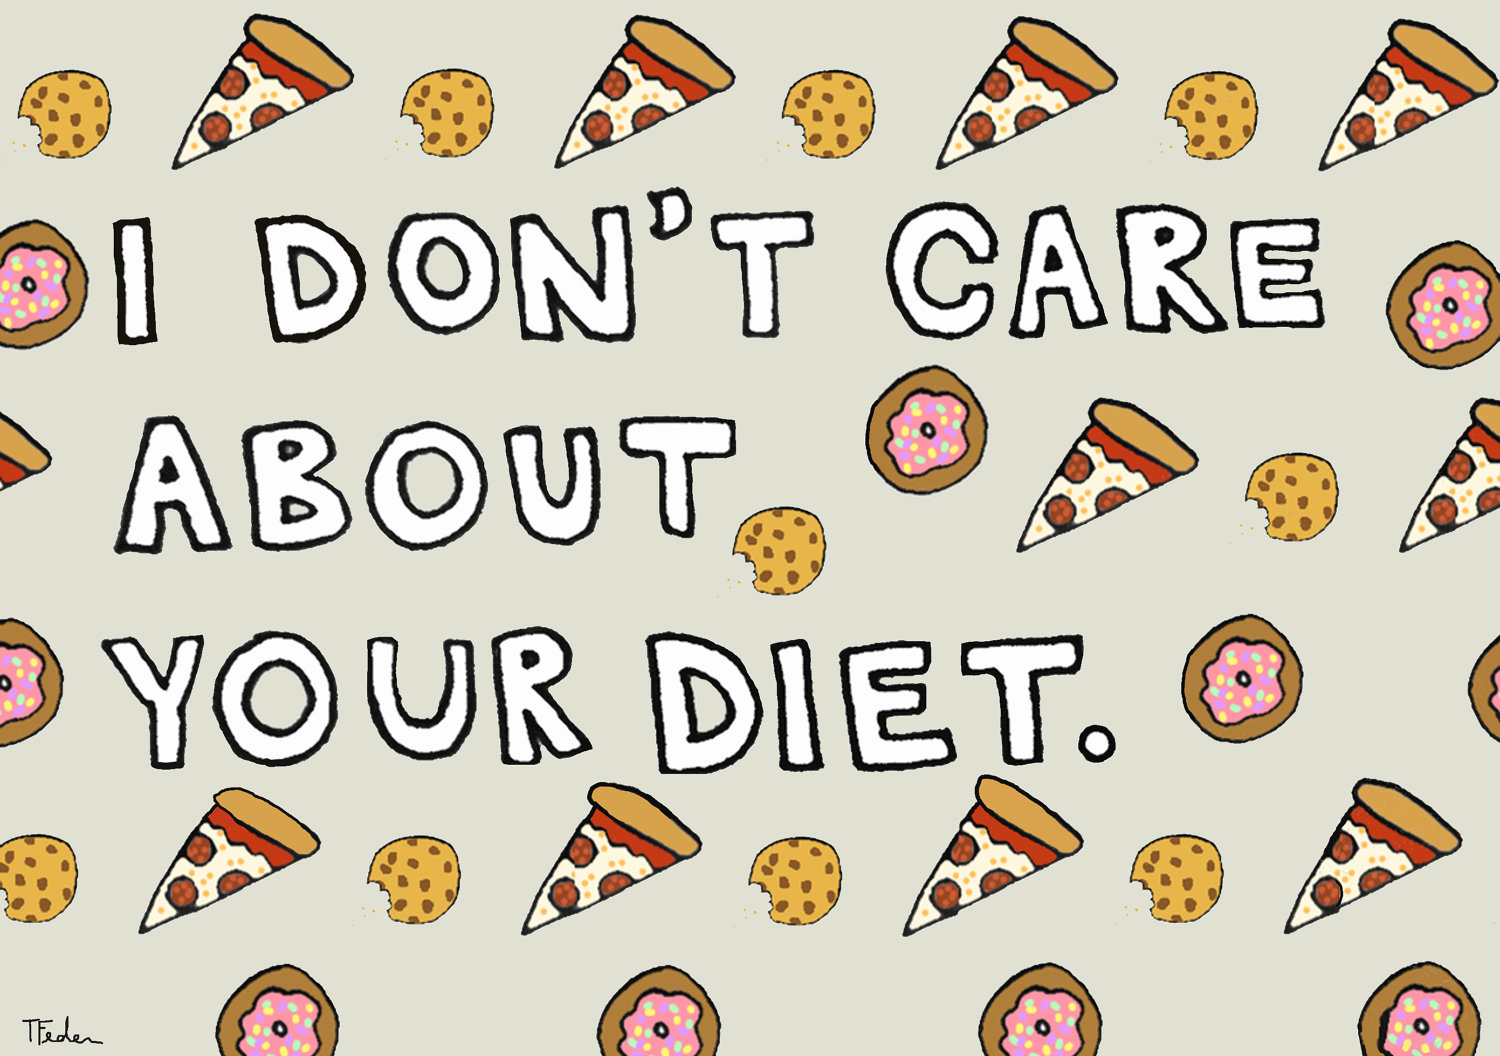 I don't care about your diet ($20)